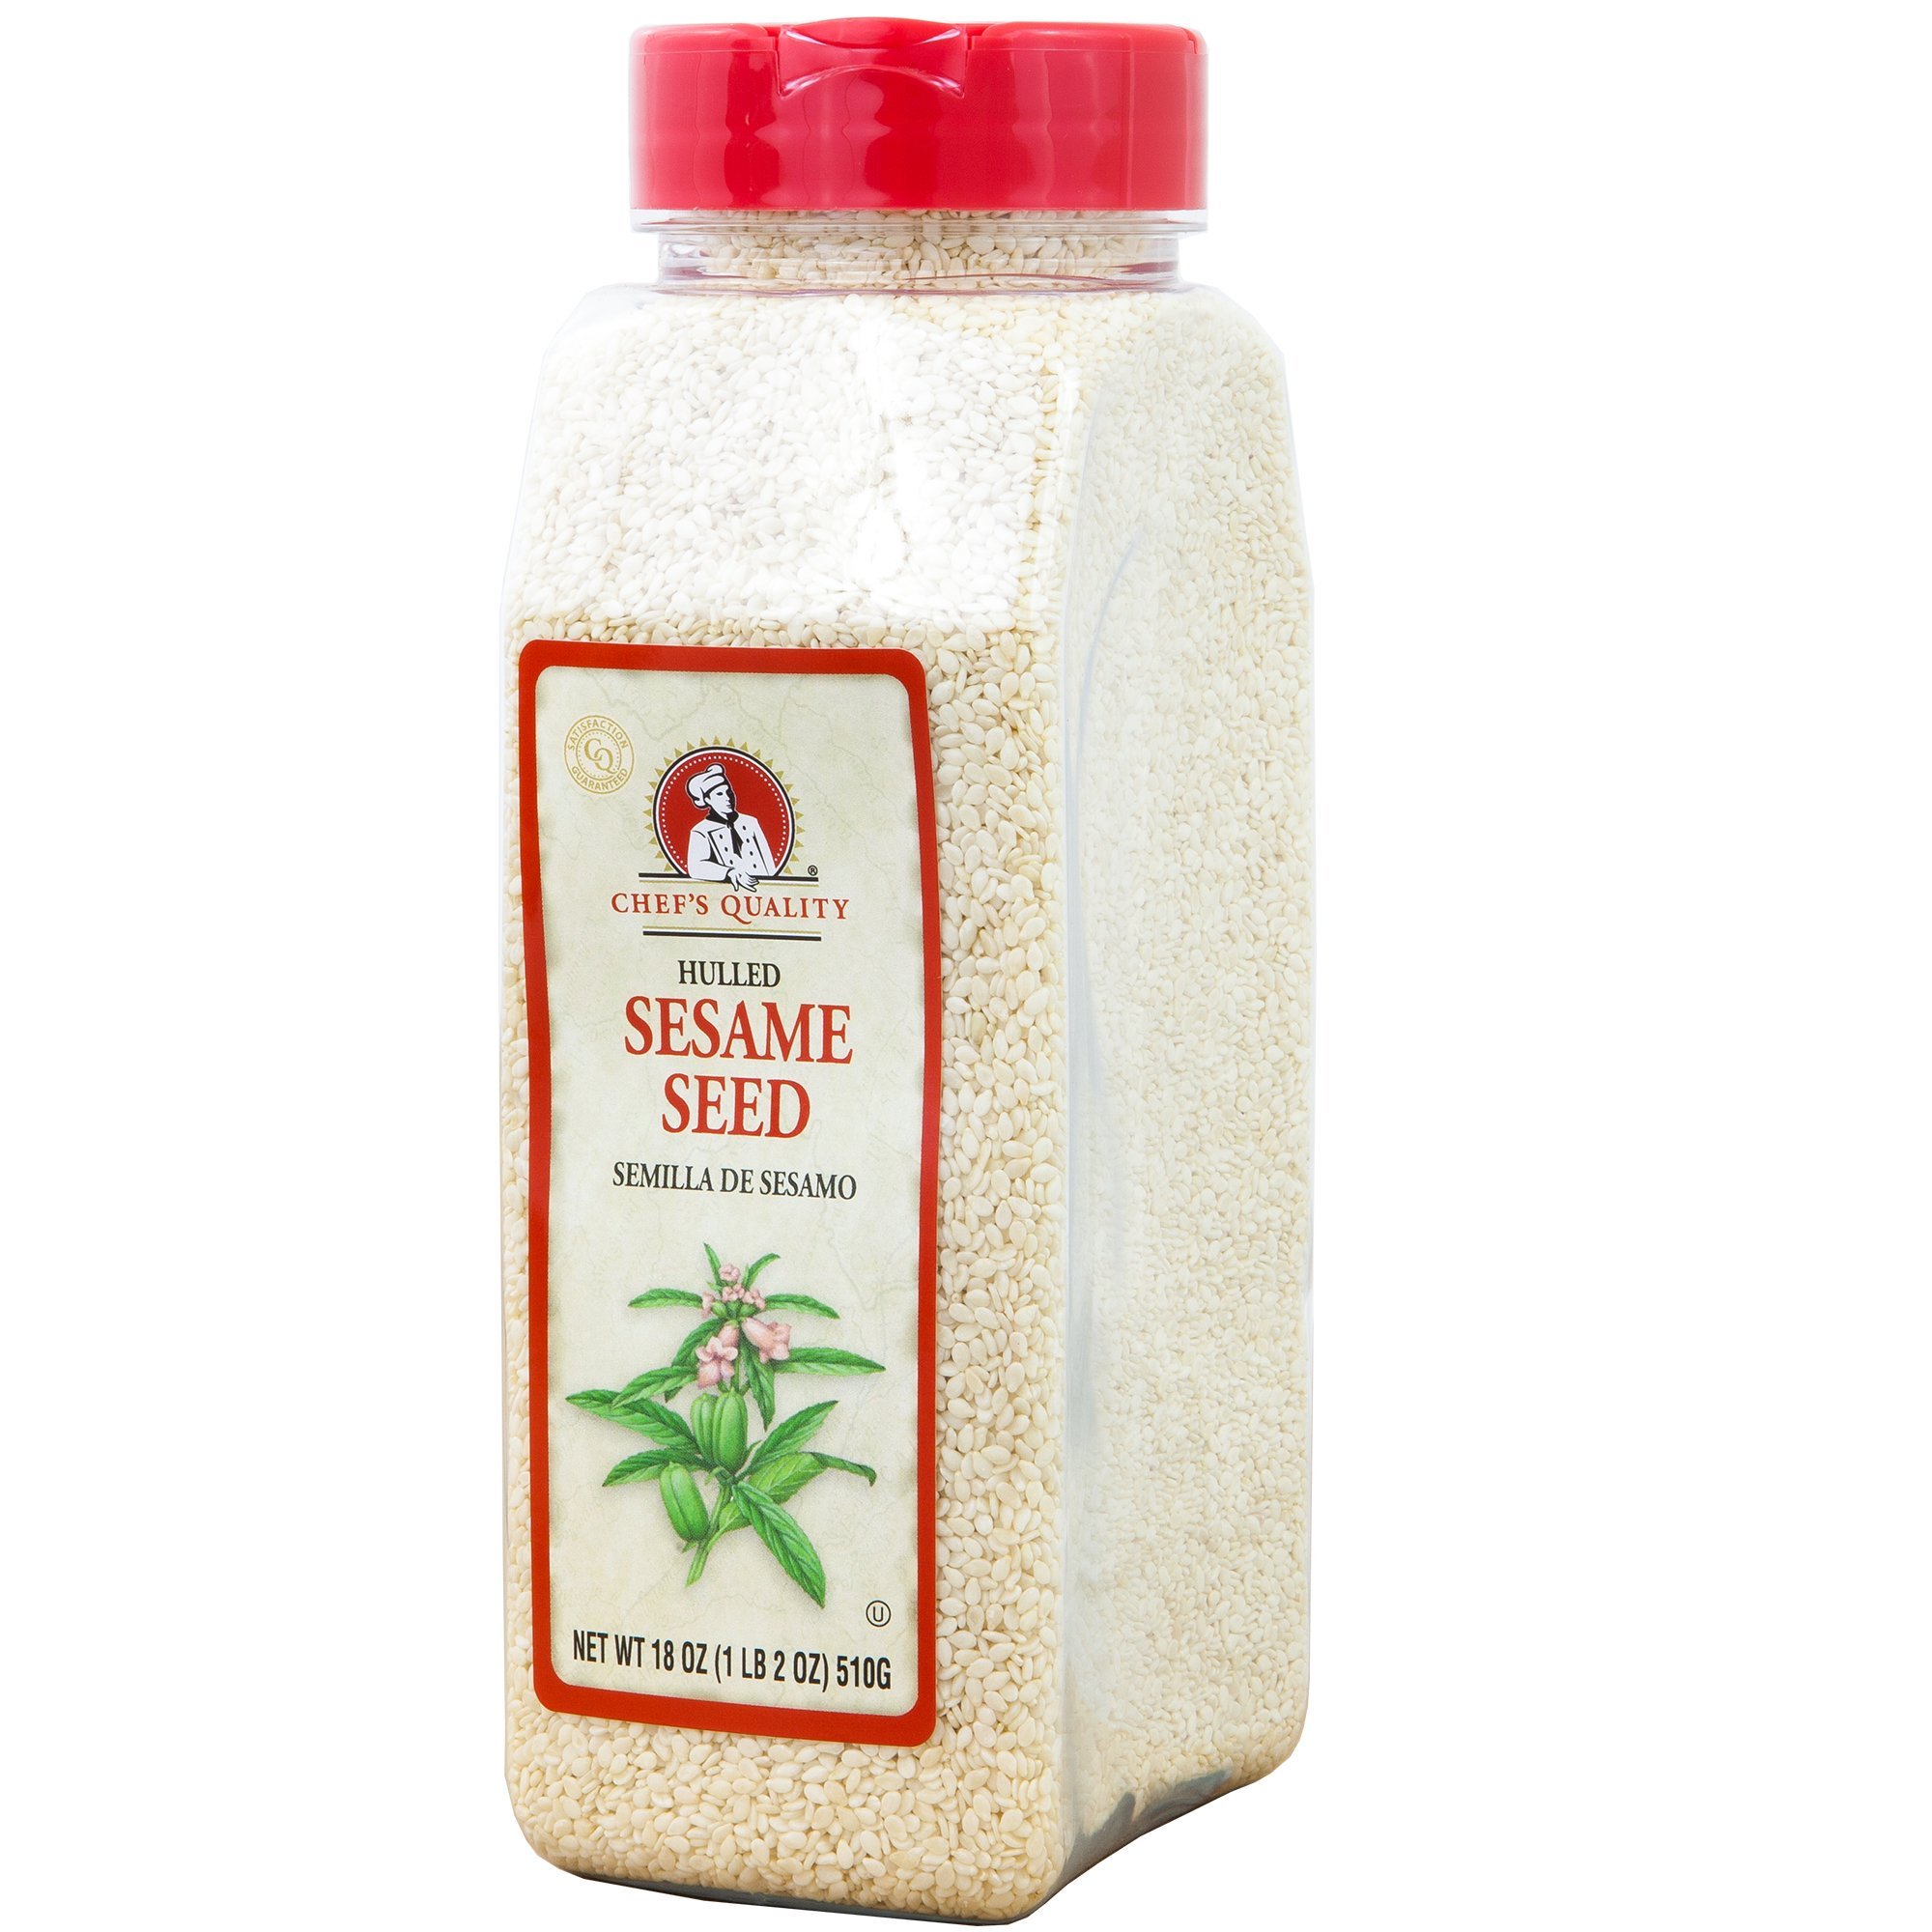 Hulled White Sesame Seed Delightfully Tasty Healthy & Crunchy 100% Natural 1LB - Chef Quality ...